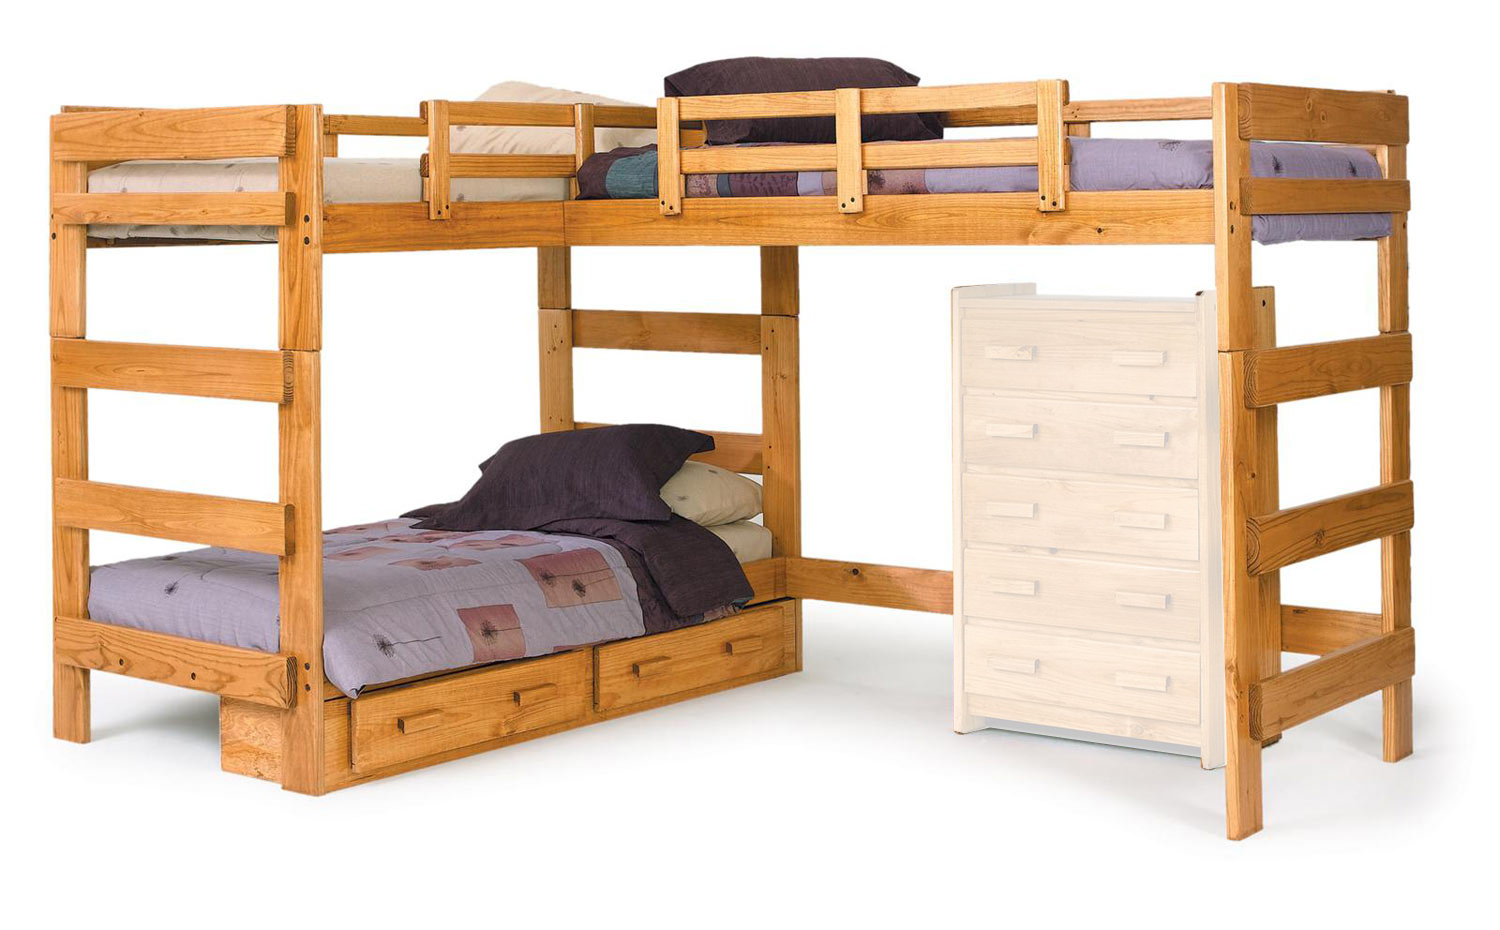 Chelsea Home 3662008-S L Shaped Loft Bed with Underbed Storage - Honey